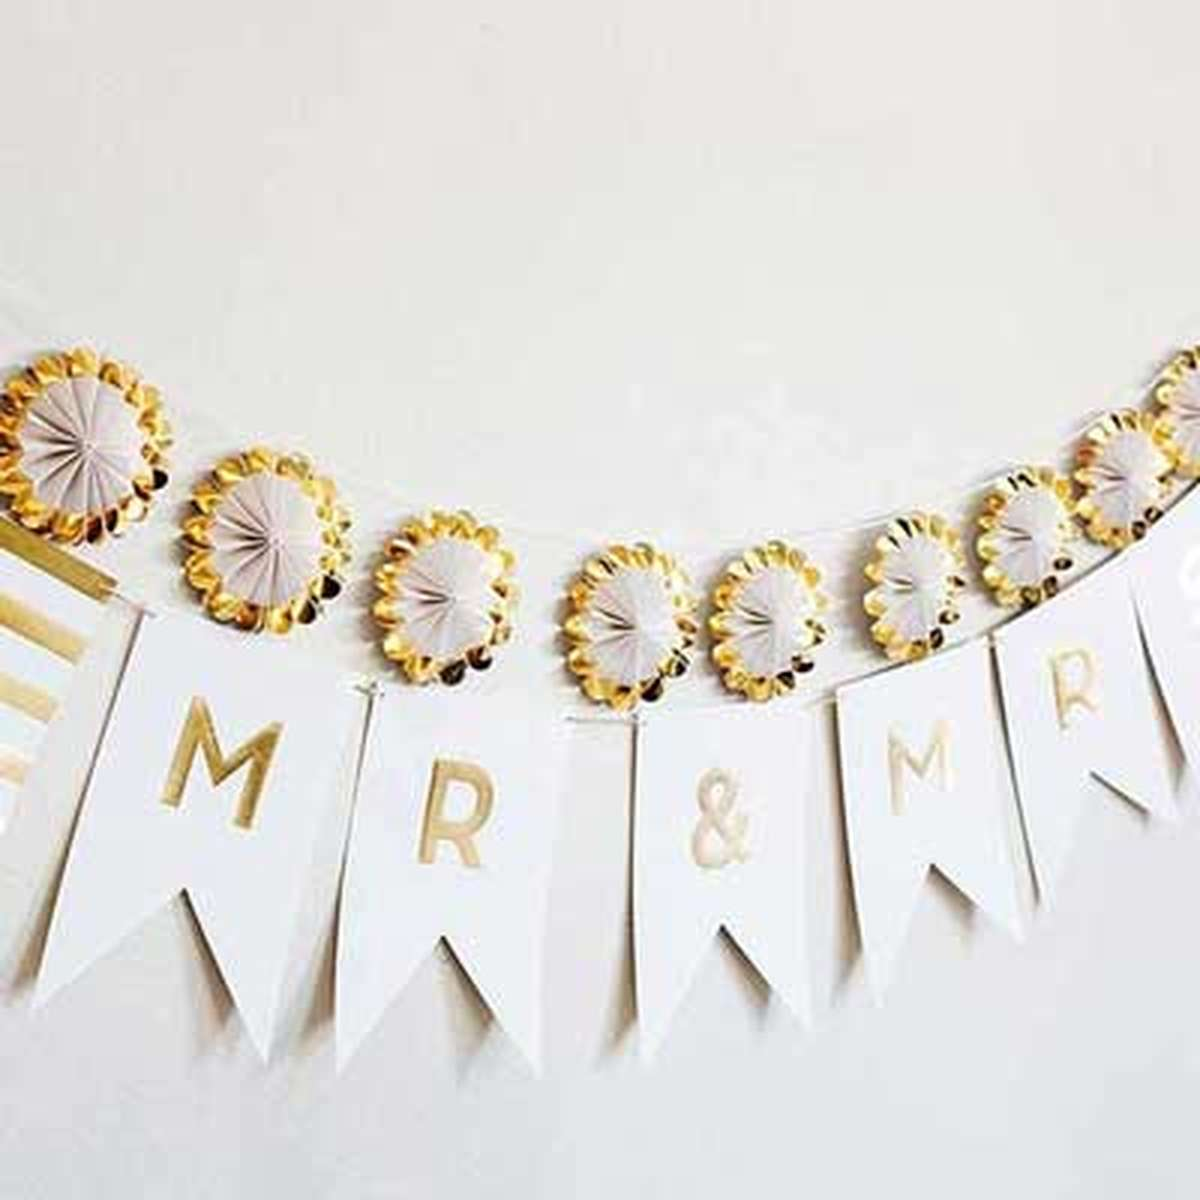 Fancy Mr. & Mrs. Letter Banner